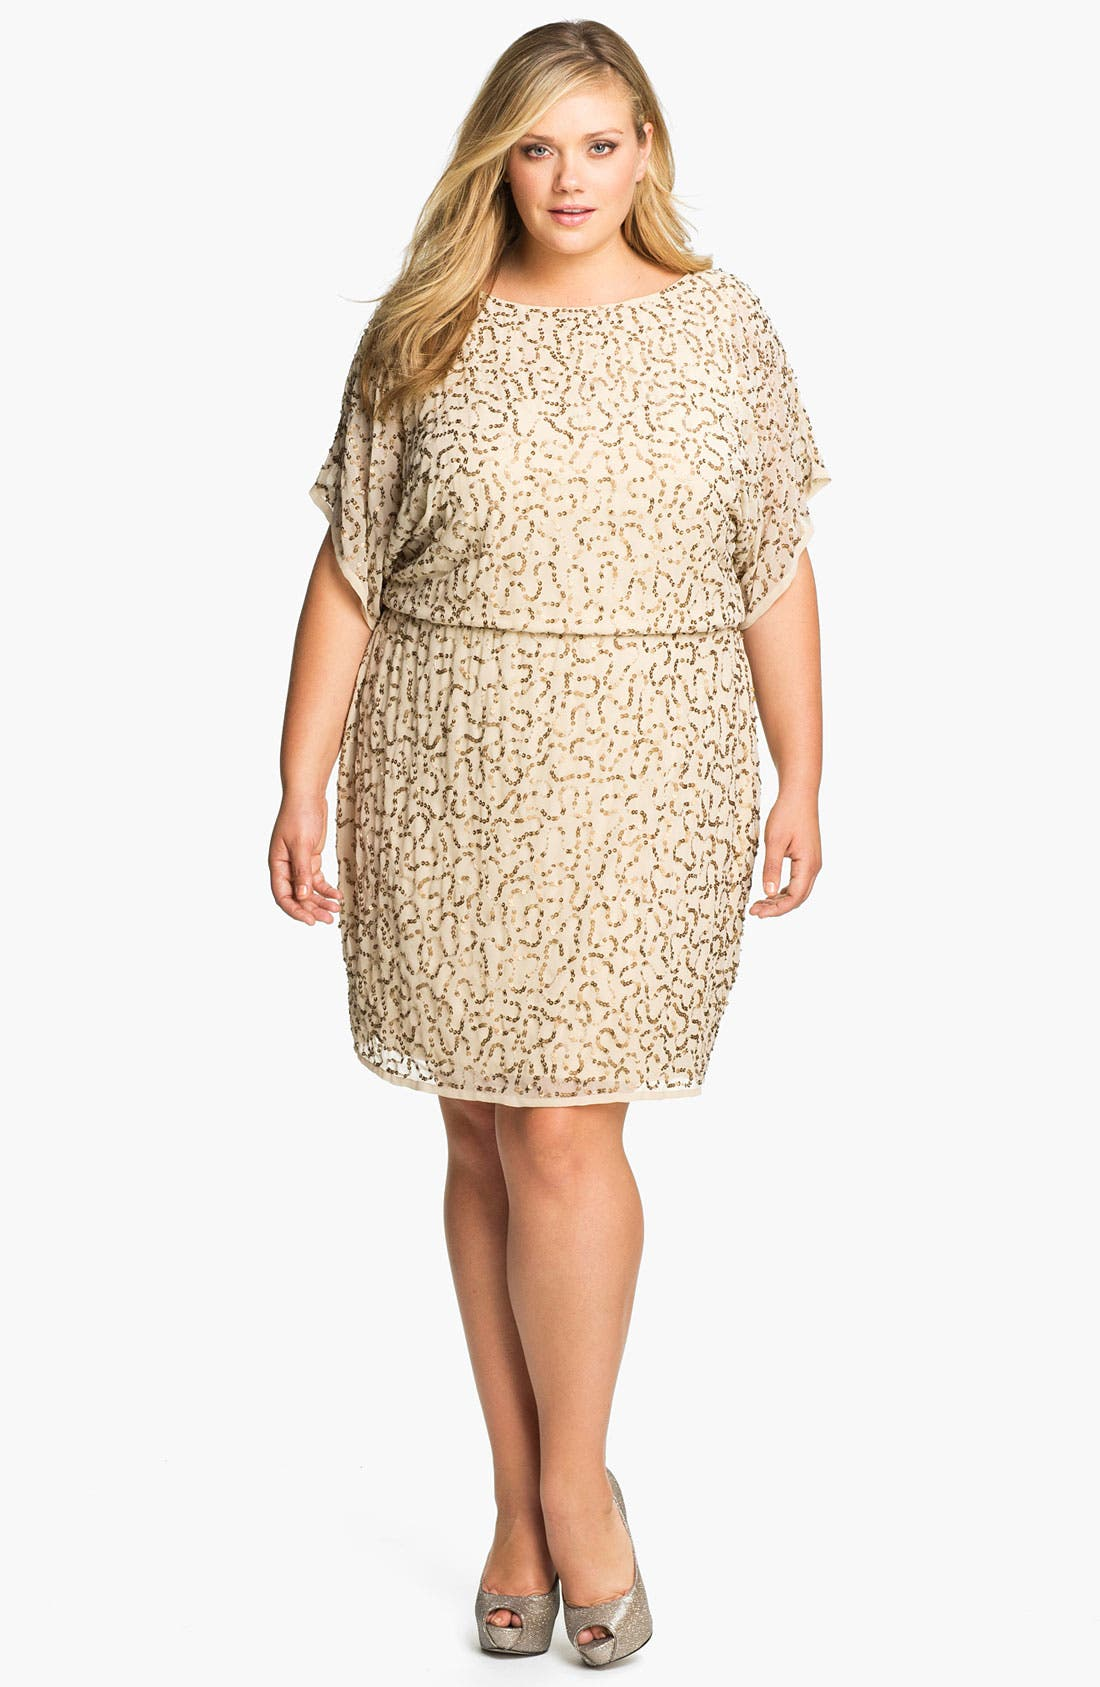 Alternate Image 1 Selected - Adrianna Papell Sequined Chiffon Blouson Dress (Plus)